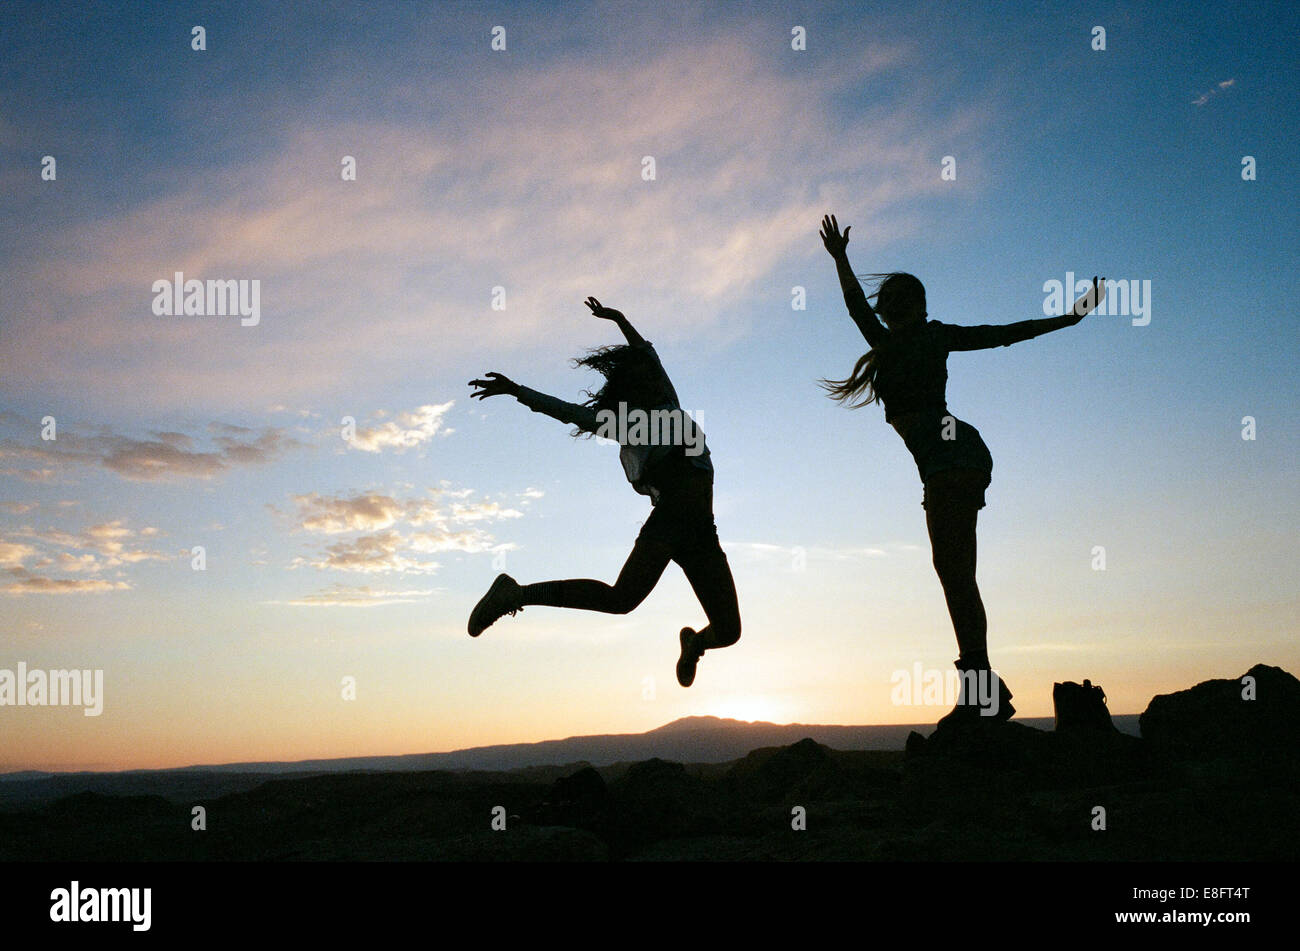 Silhouettes of two women jumping at sunset - Stock Image